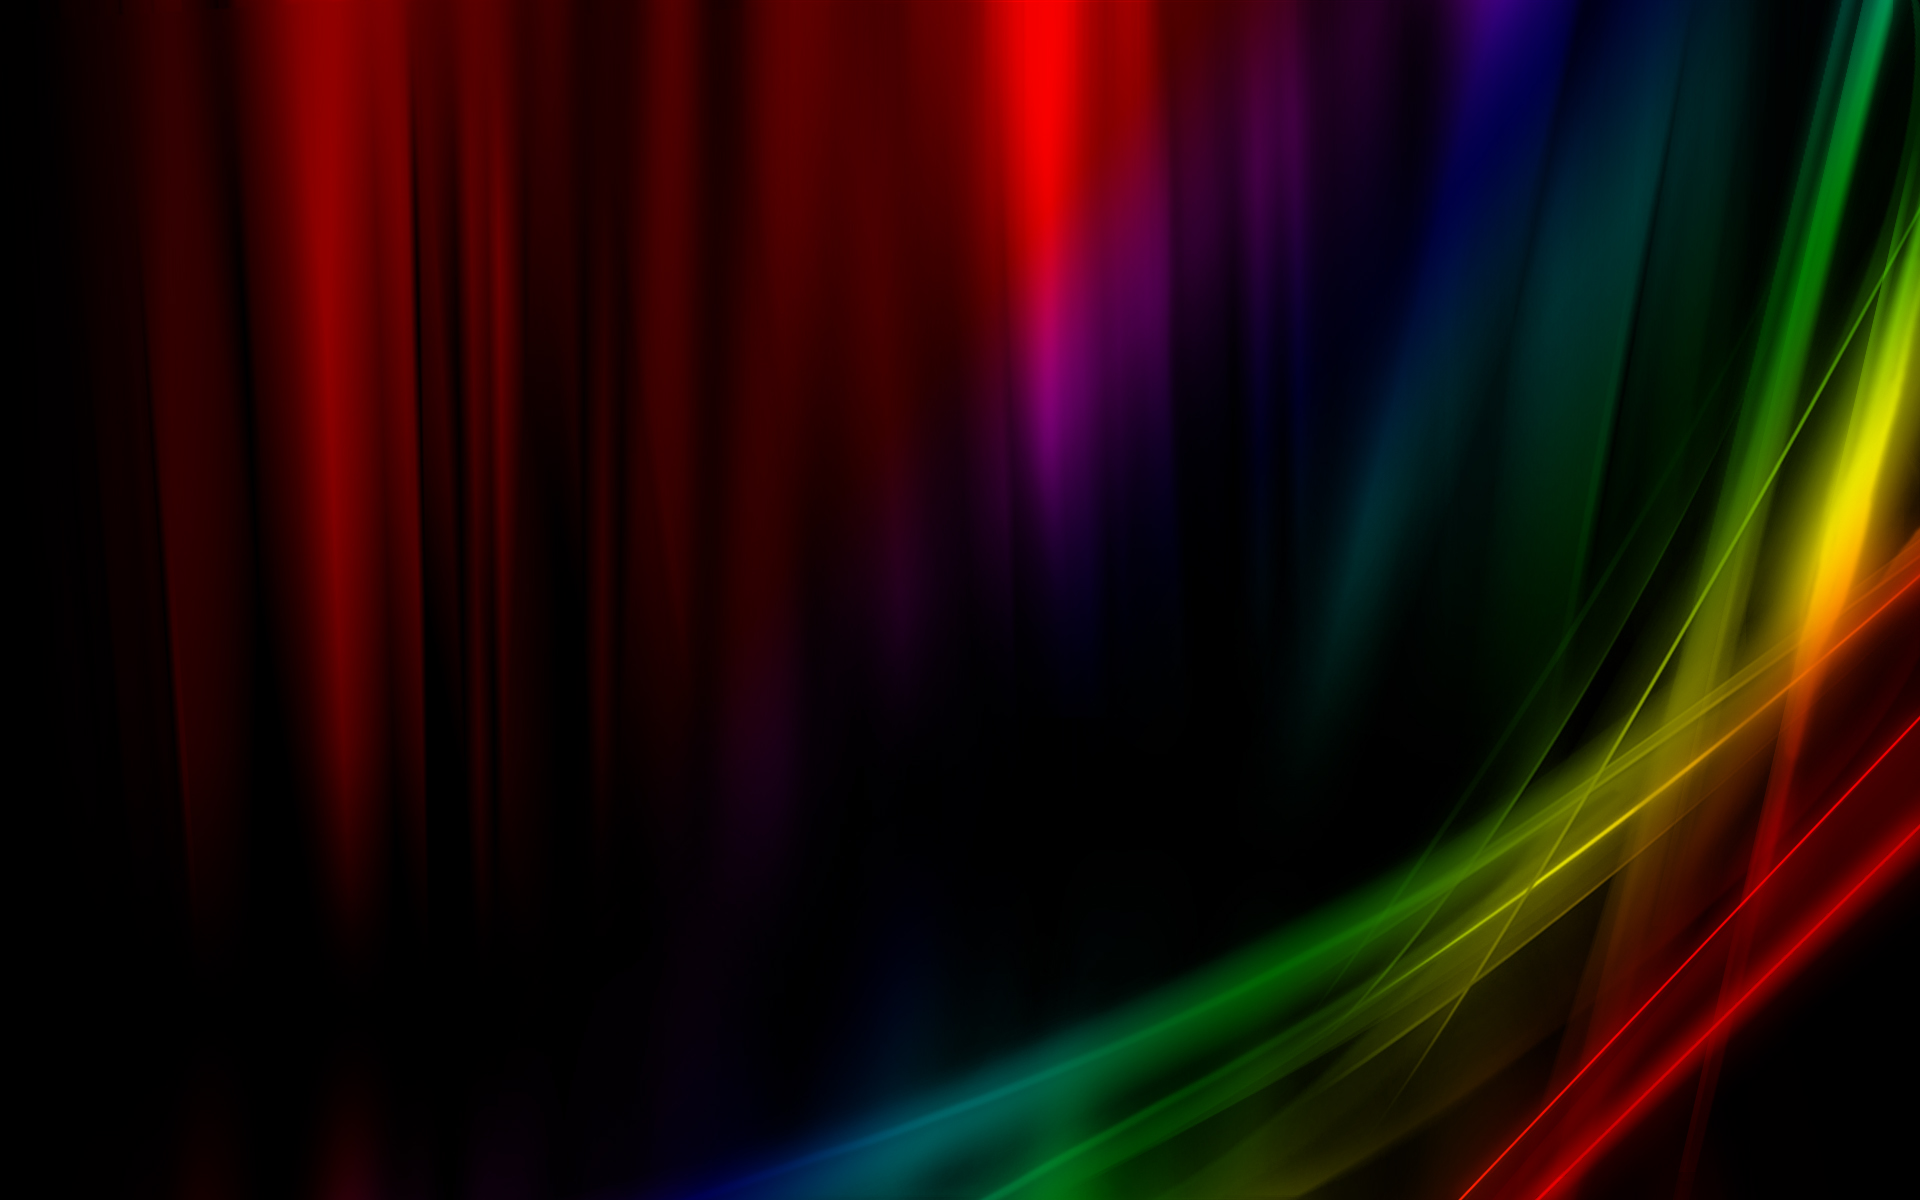 Hd Wallpaper Color Download: Colors Full HD Wallpaper And Background Image